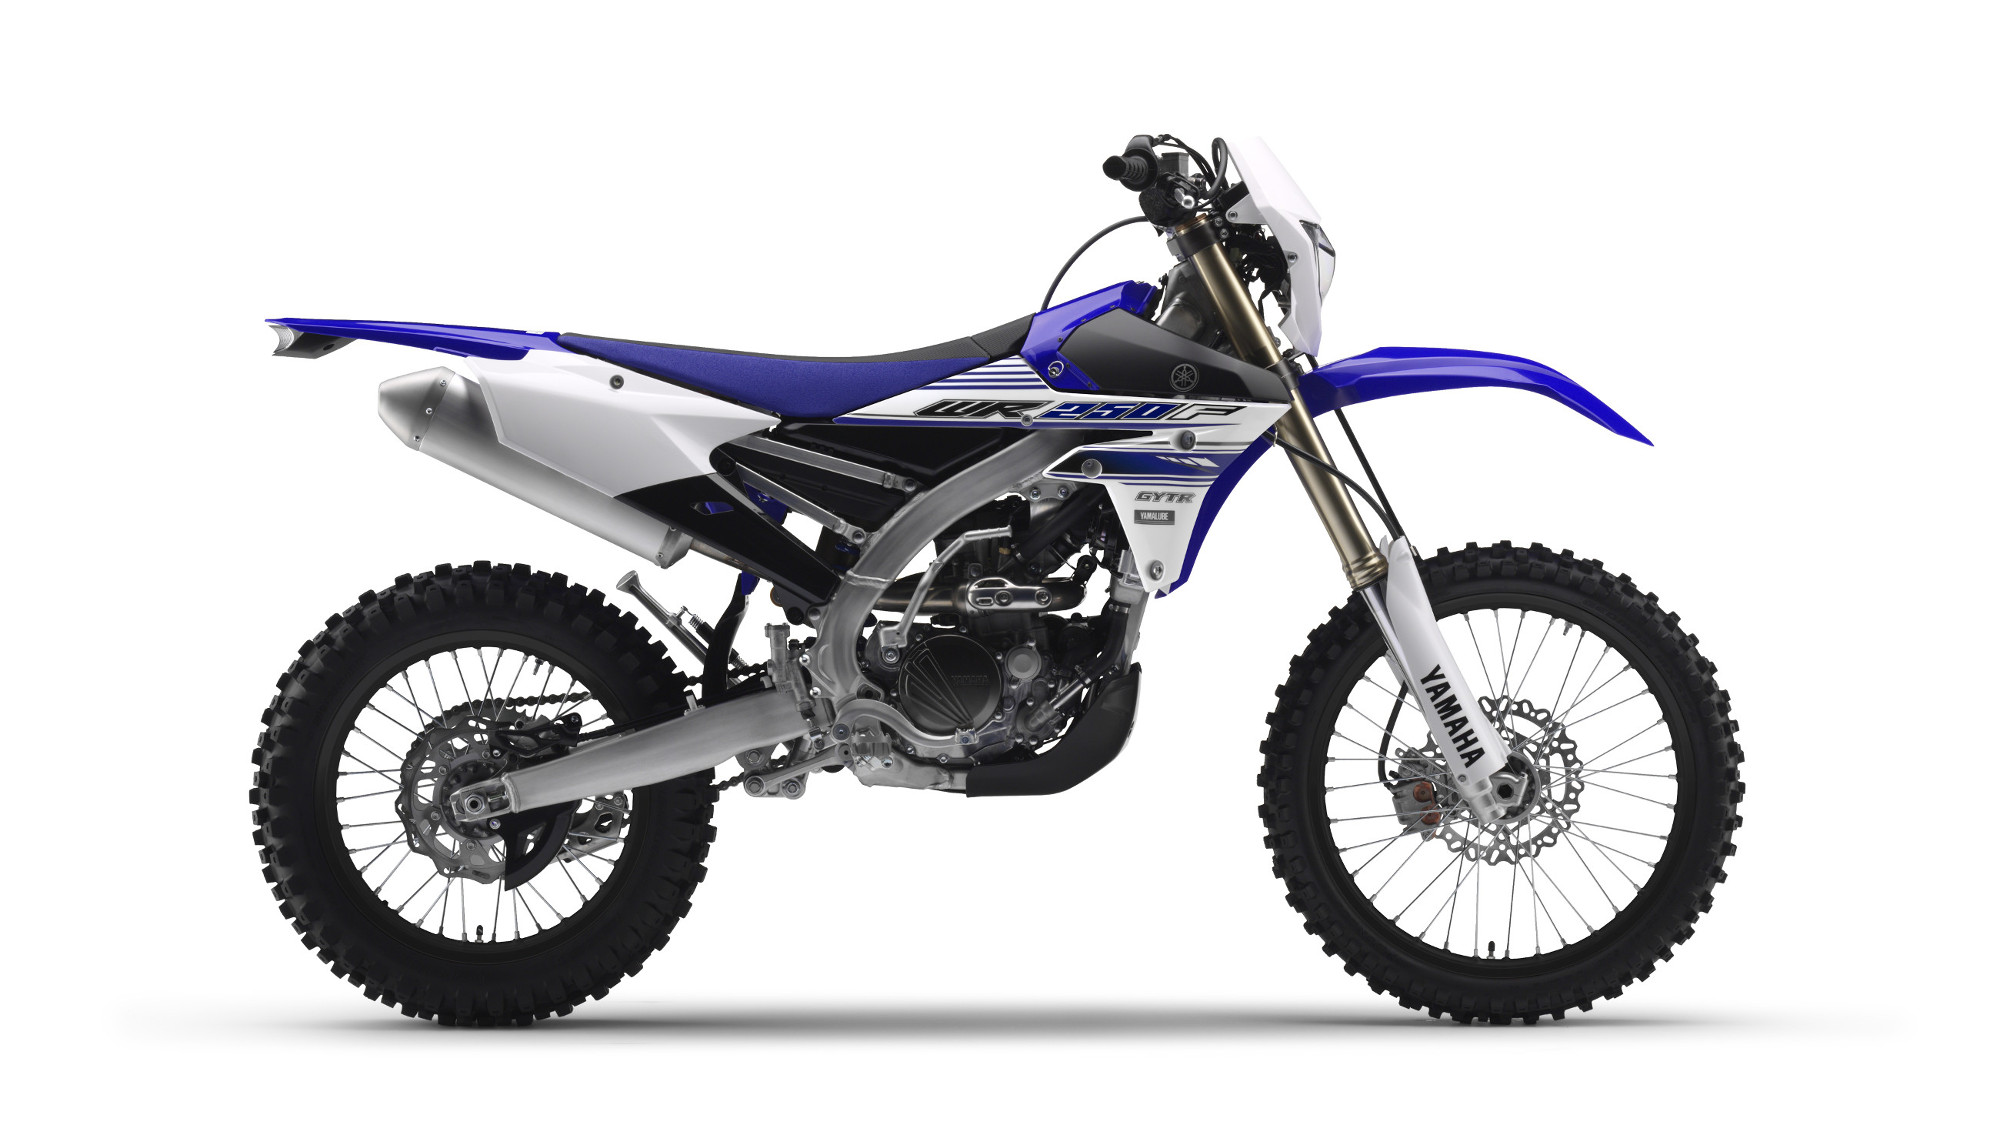 2016 Yamaha Off Road Range Includes Limited Editions